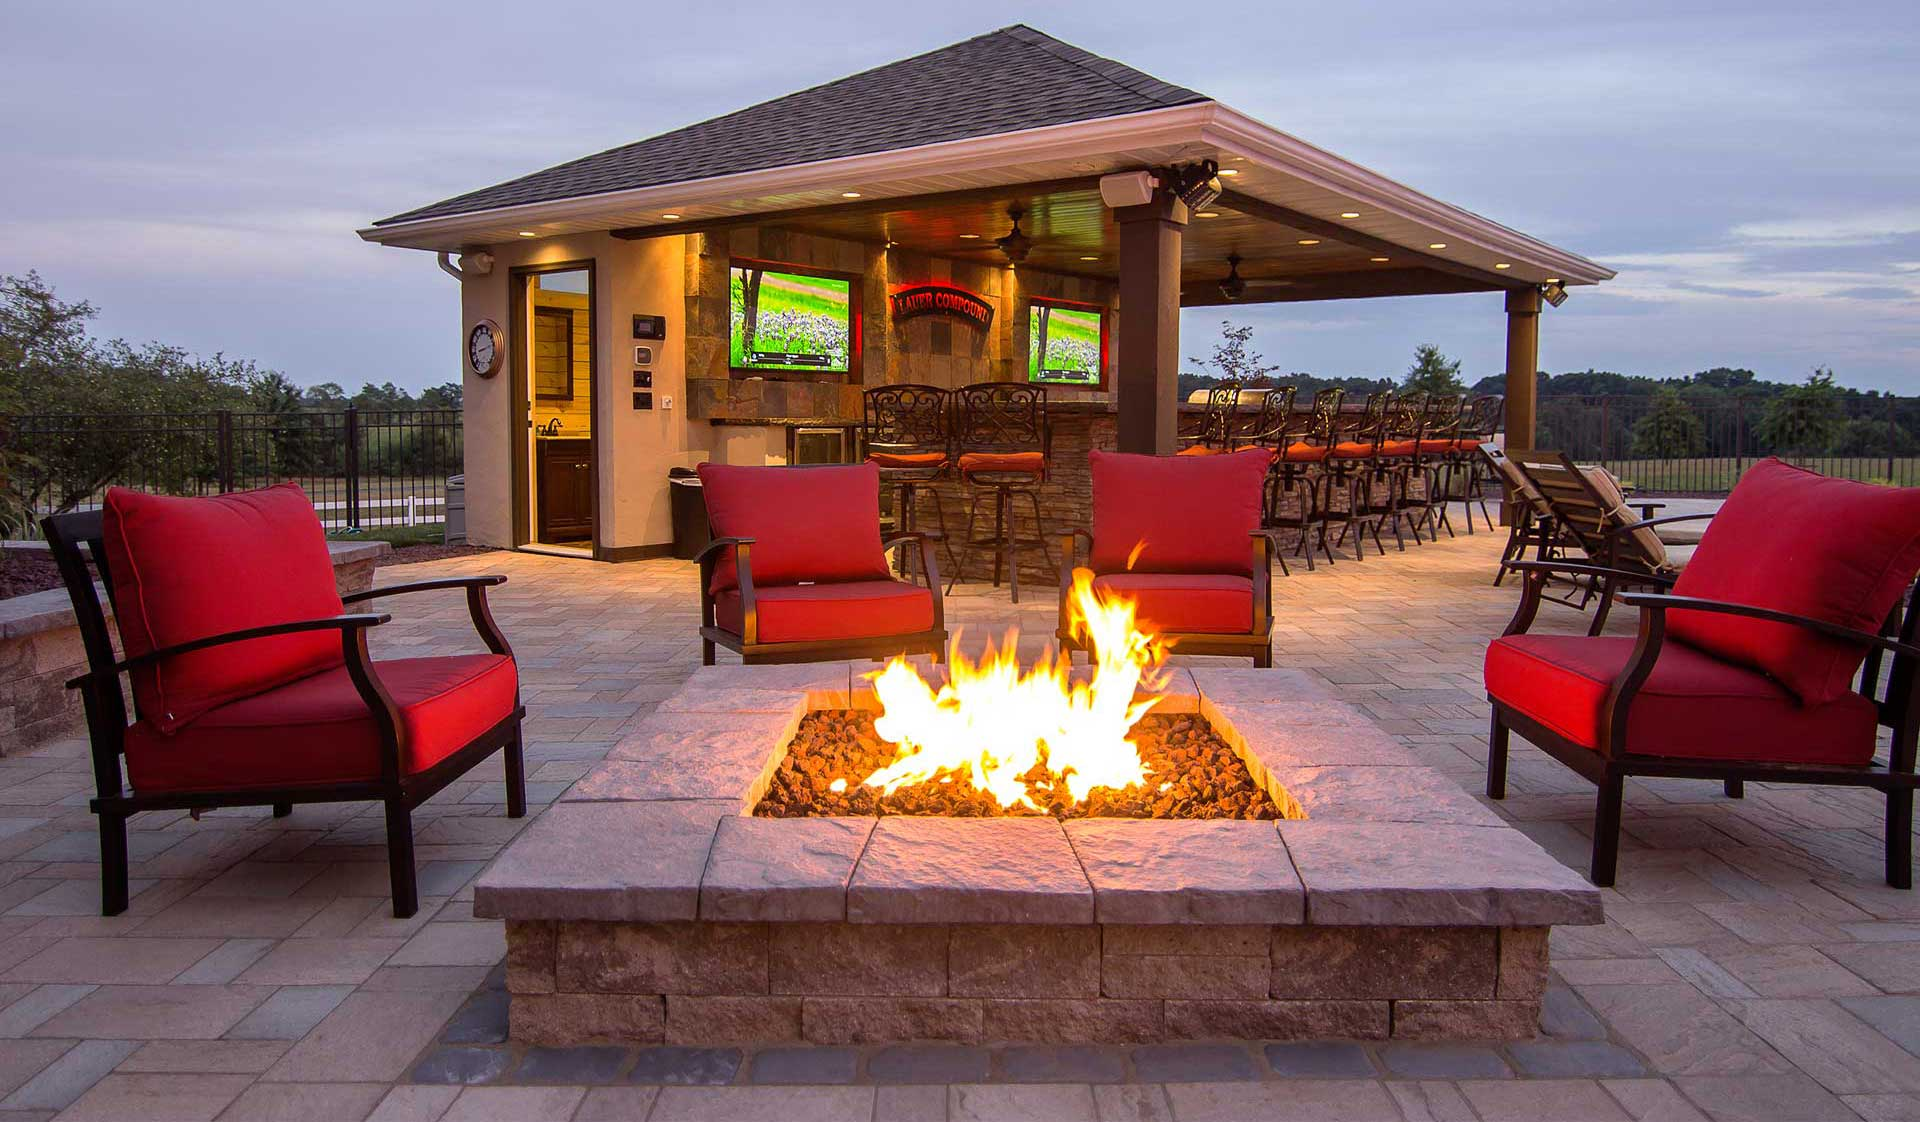 HPC Fire Pit with bar in the background